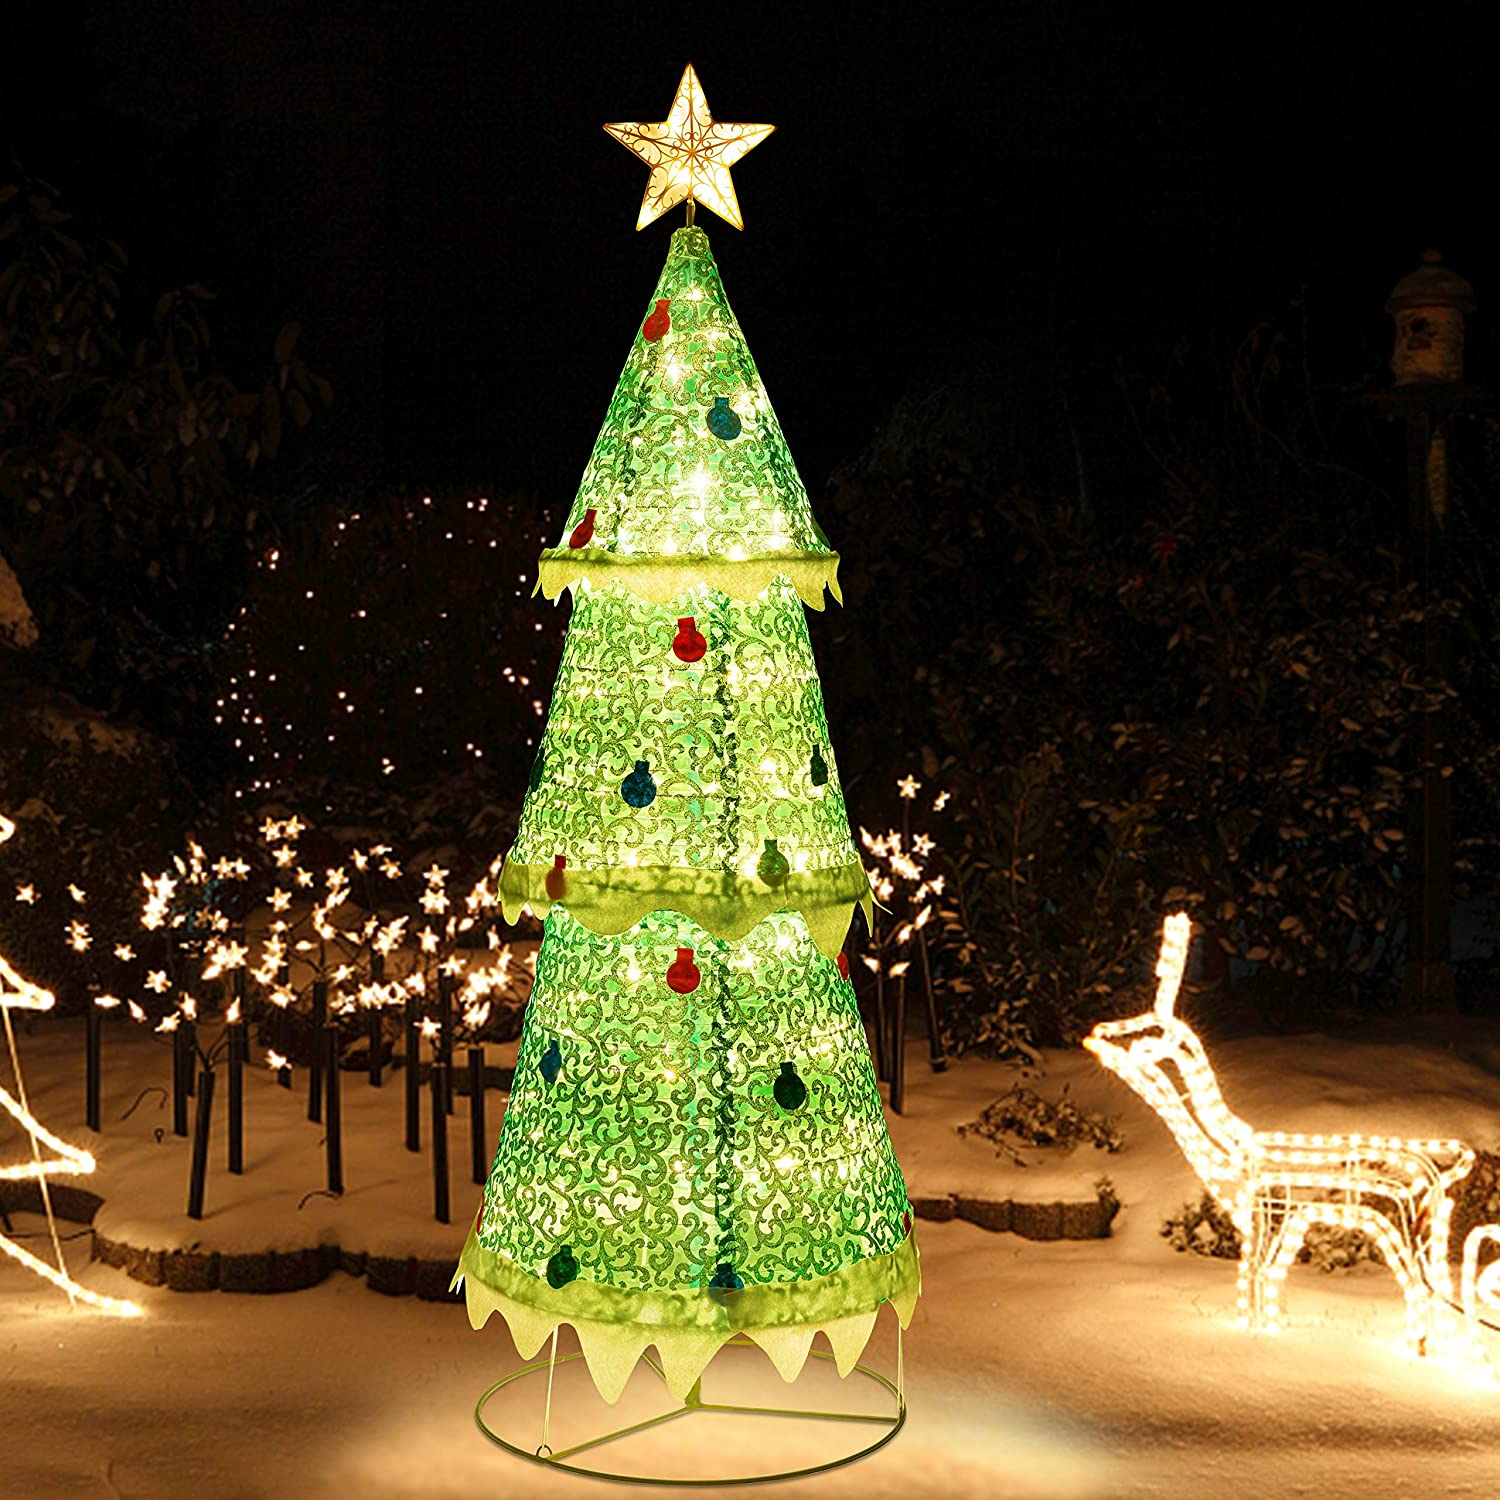 ATDAWN 6ft Pre-Lit Light Up Christmas Tree, Collapsible Christmas Tree Outdoor Decoration, 160 LED Lighted Christmas Tree Yard Decorations